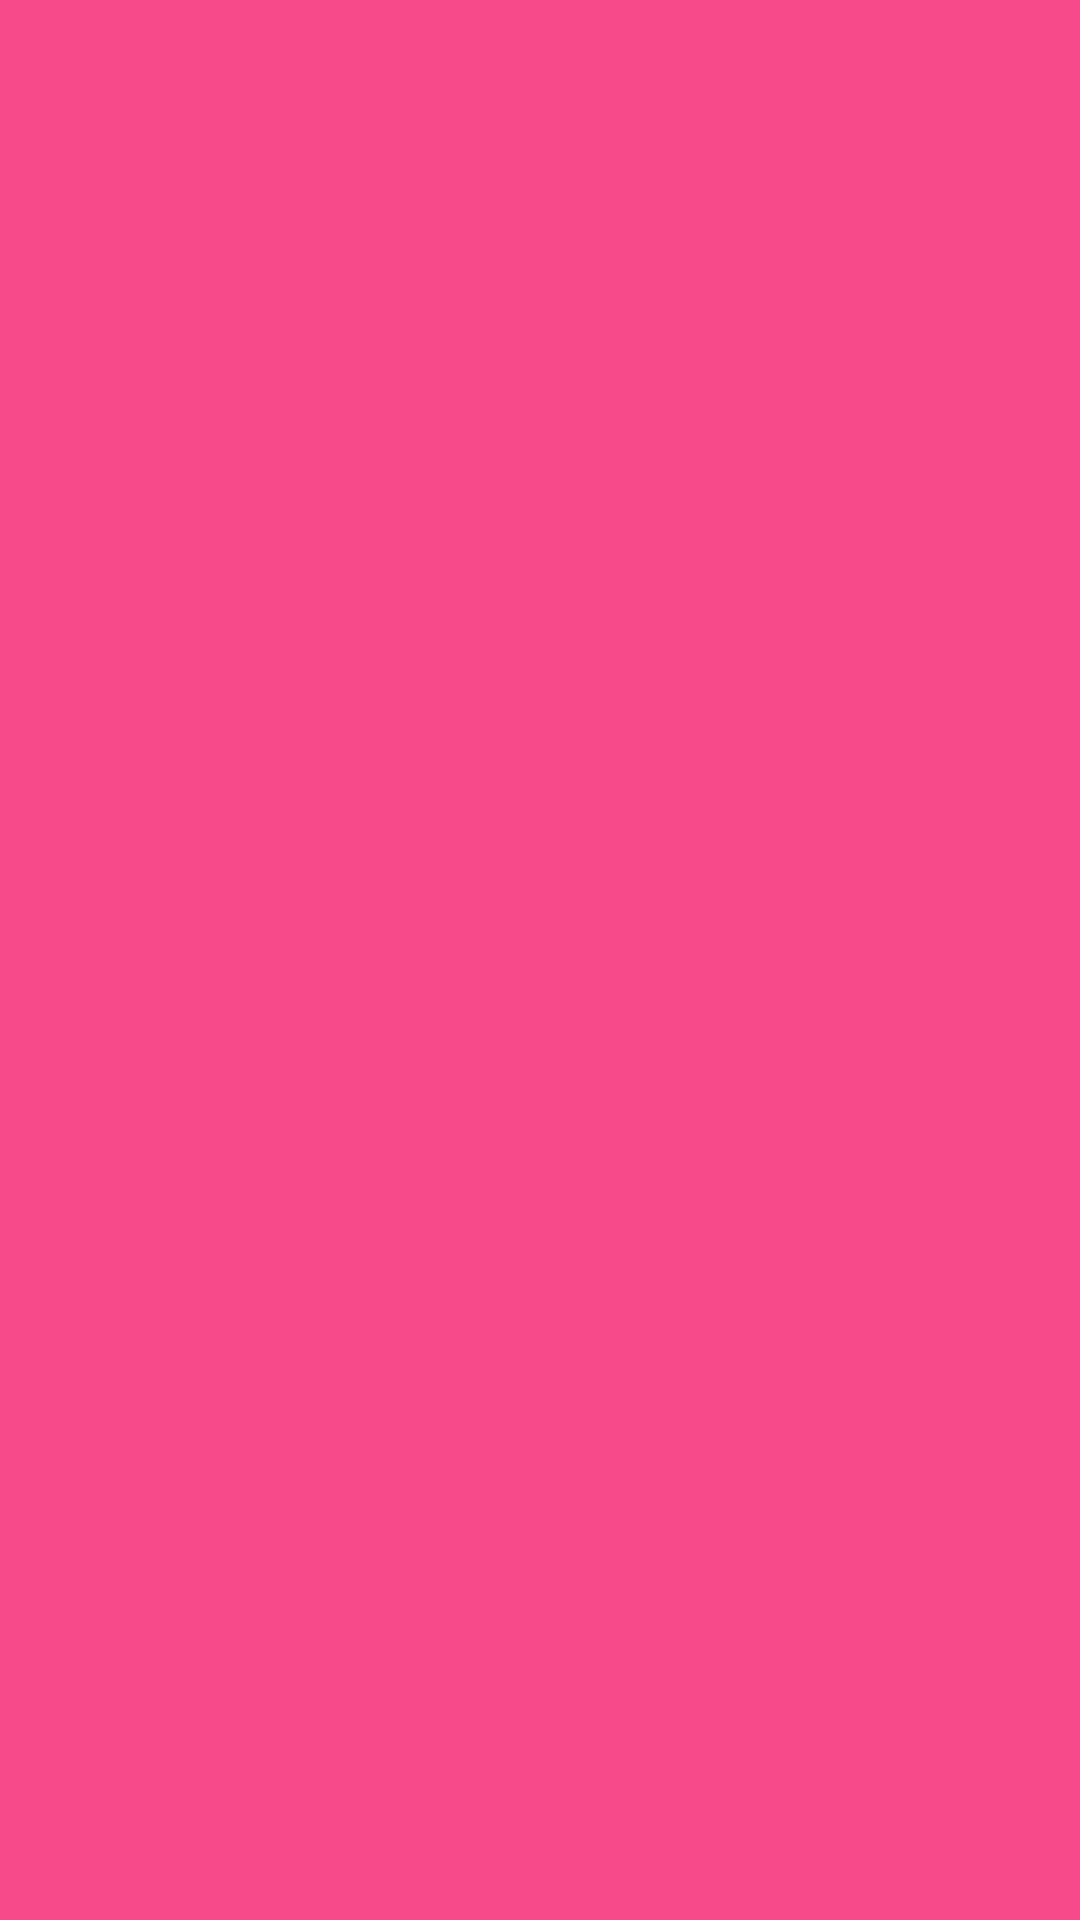 1080x1920 French Rose Solid Color Background